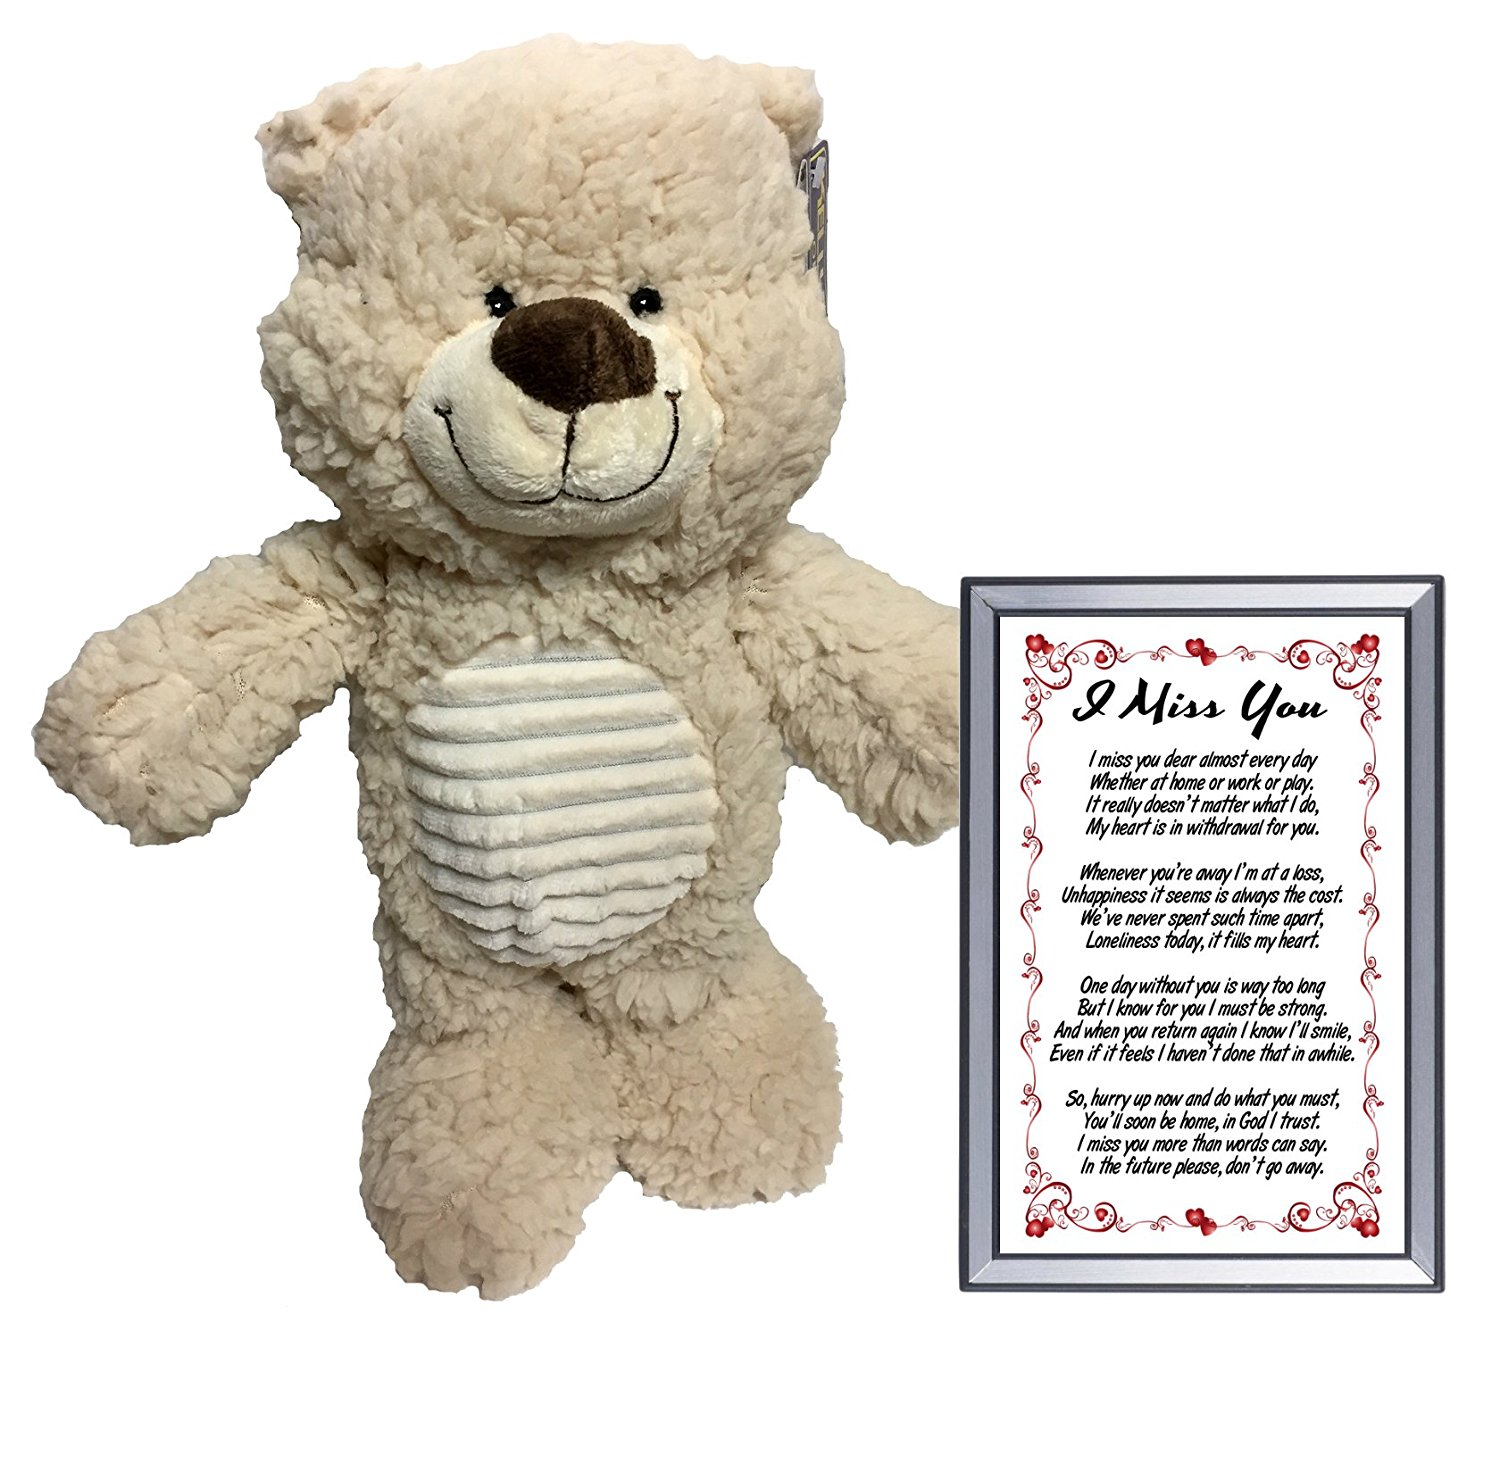 I Miss You Gift 14 Inch Plush Teddy Bear and Sentimental Romantic Love Poem Gift in 4x6 Inch Picture Frame for Valentines Day, Birthday, Christmas - By Words Matter Gifts